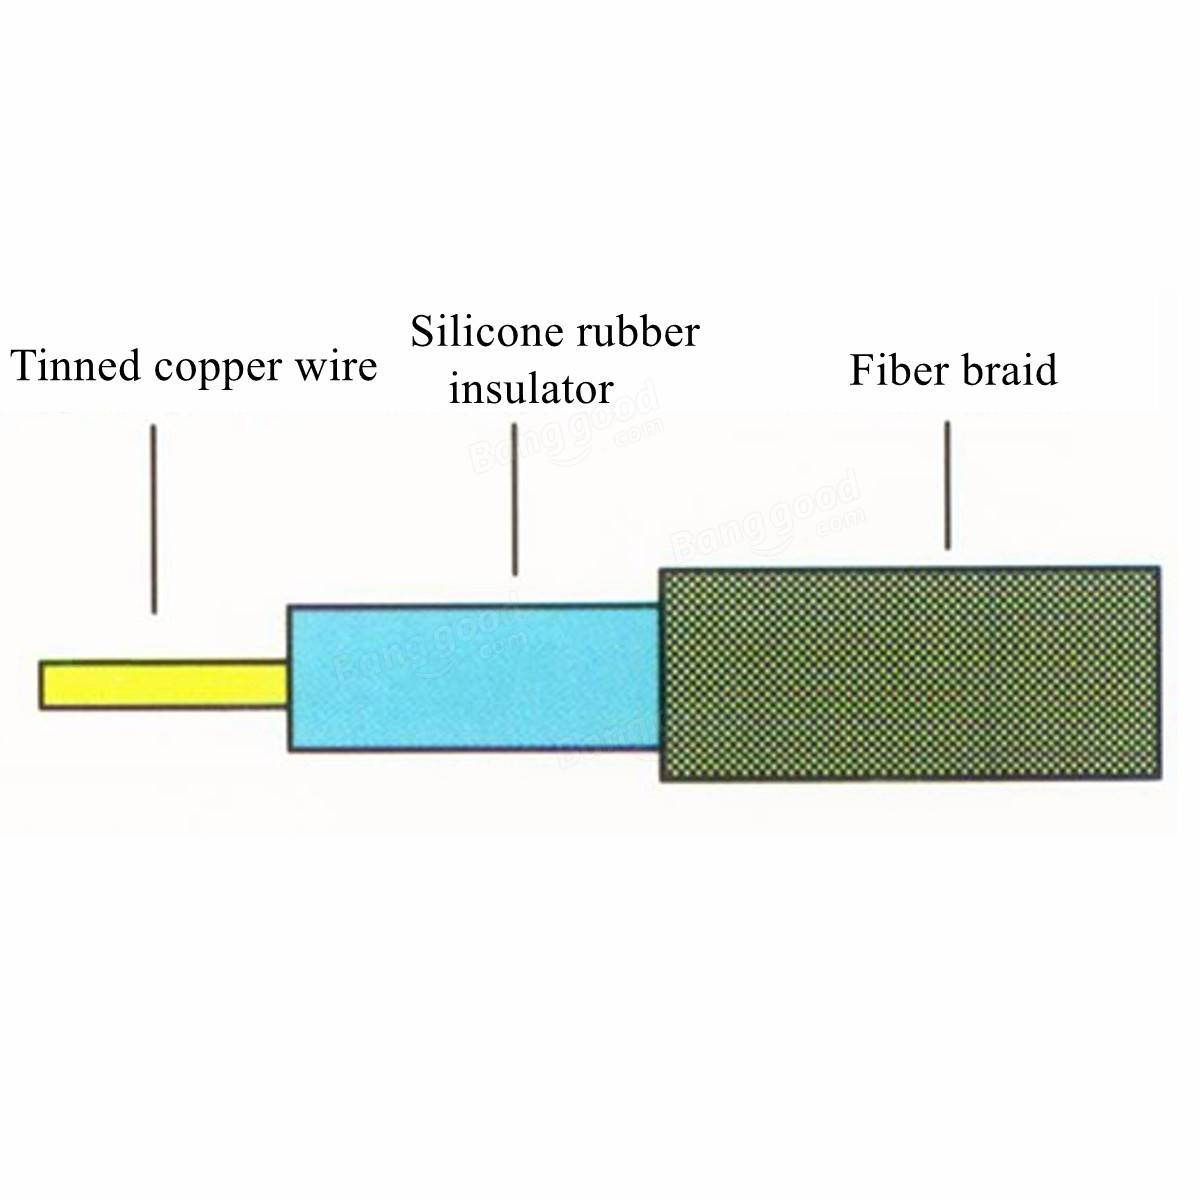 how to prepare 0.1 m copper sulfate